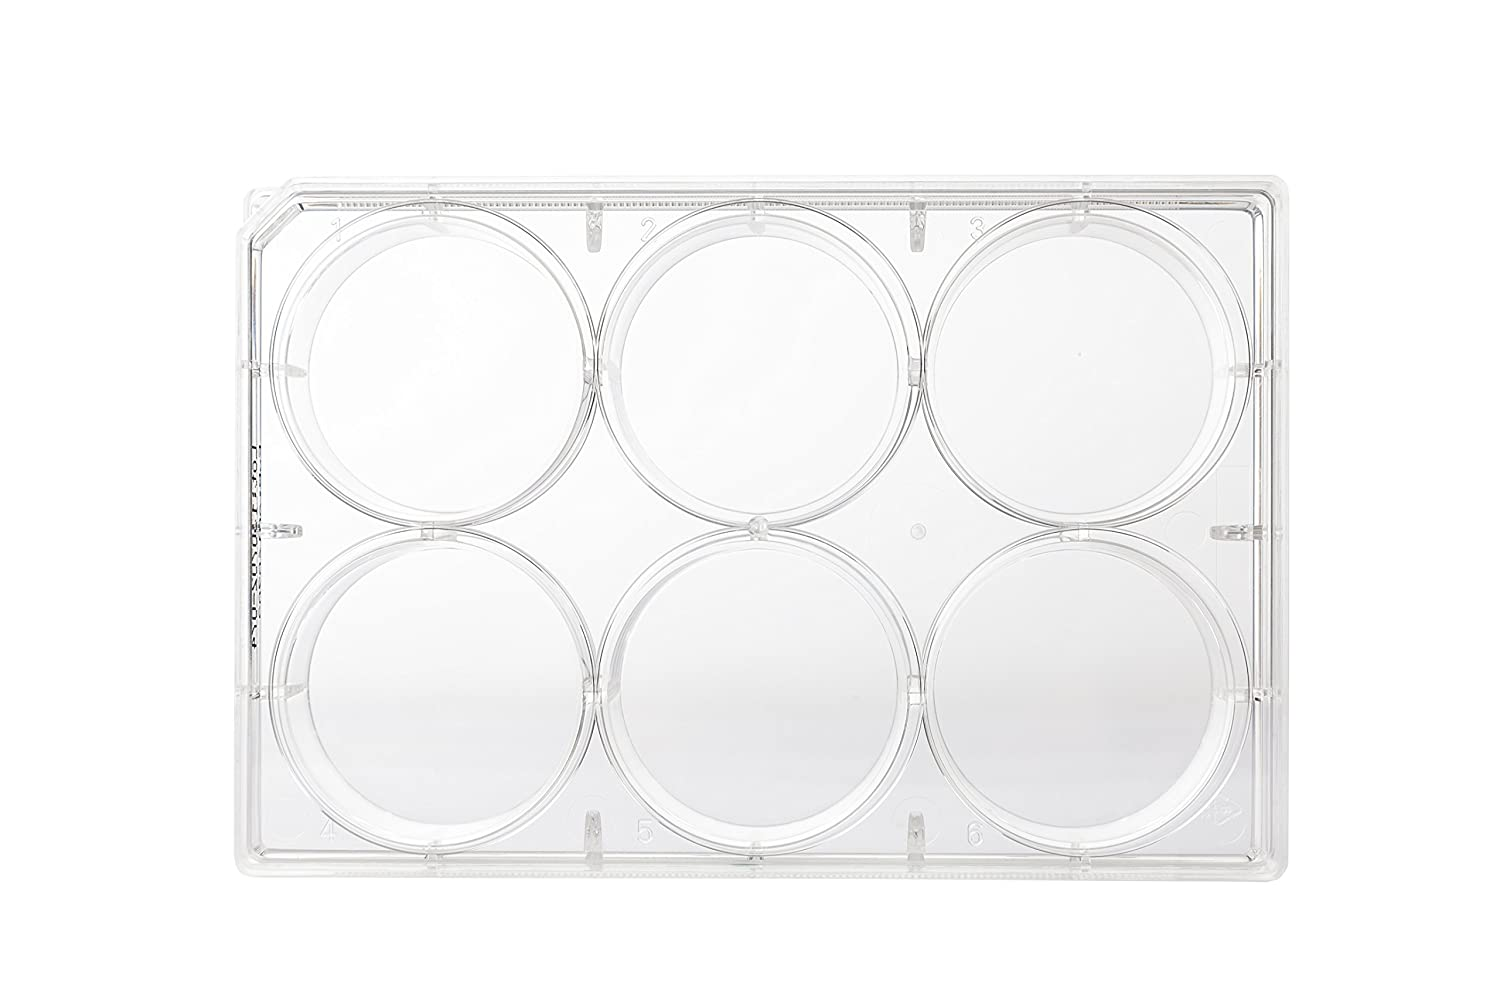 Neolab C 8110 Multi Test Plates 6 Well Flat, 34.7 mm Dia x 9.15 m² 16 ml (Pack of 100) 34.7 mm Dia x 9.15 m² 16 ml (Pack of 100) C-8110